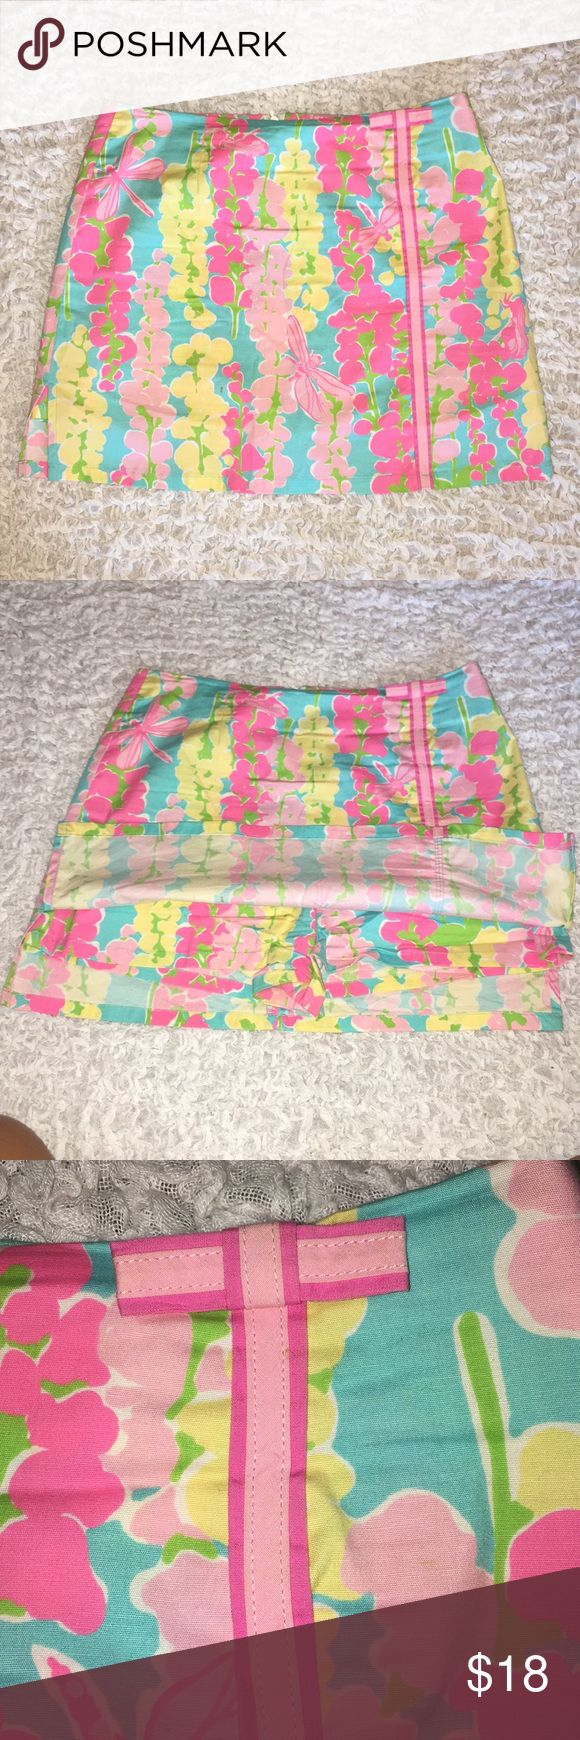 Lilly Pulitzer Lenore Skirt - Dragon Fly Great for summer! This pattern is to die for, bright and fun!  Lenore Skort from Lilly Pulitzer Good condition - no tag - small spot marked in picture with arrow.   97% cotton, 3% spandex   Machine wash cold  No bleach Tumble dry low or hang to dry. Lilly Pulitzer Skirts Mini